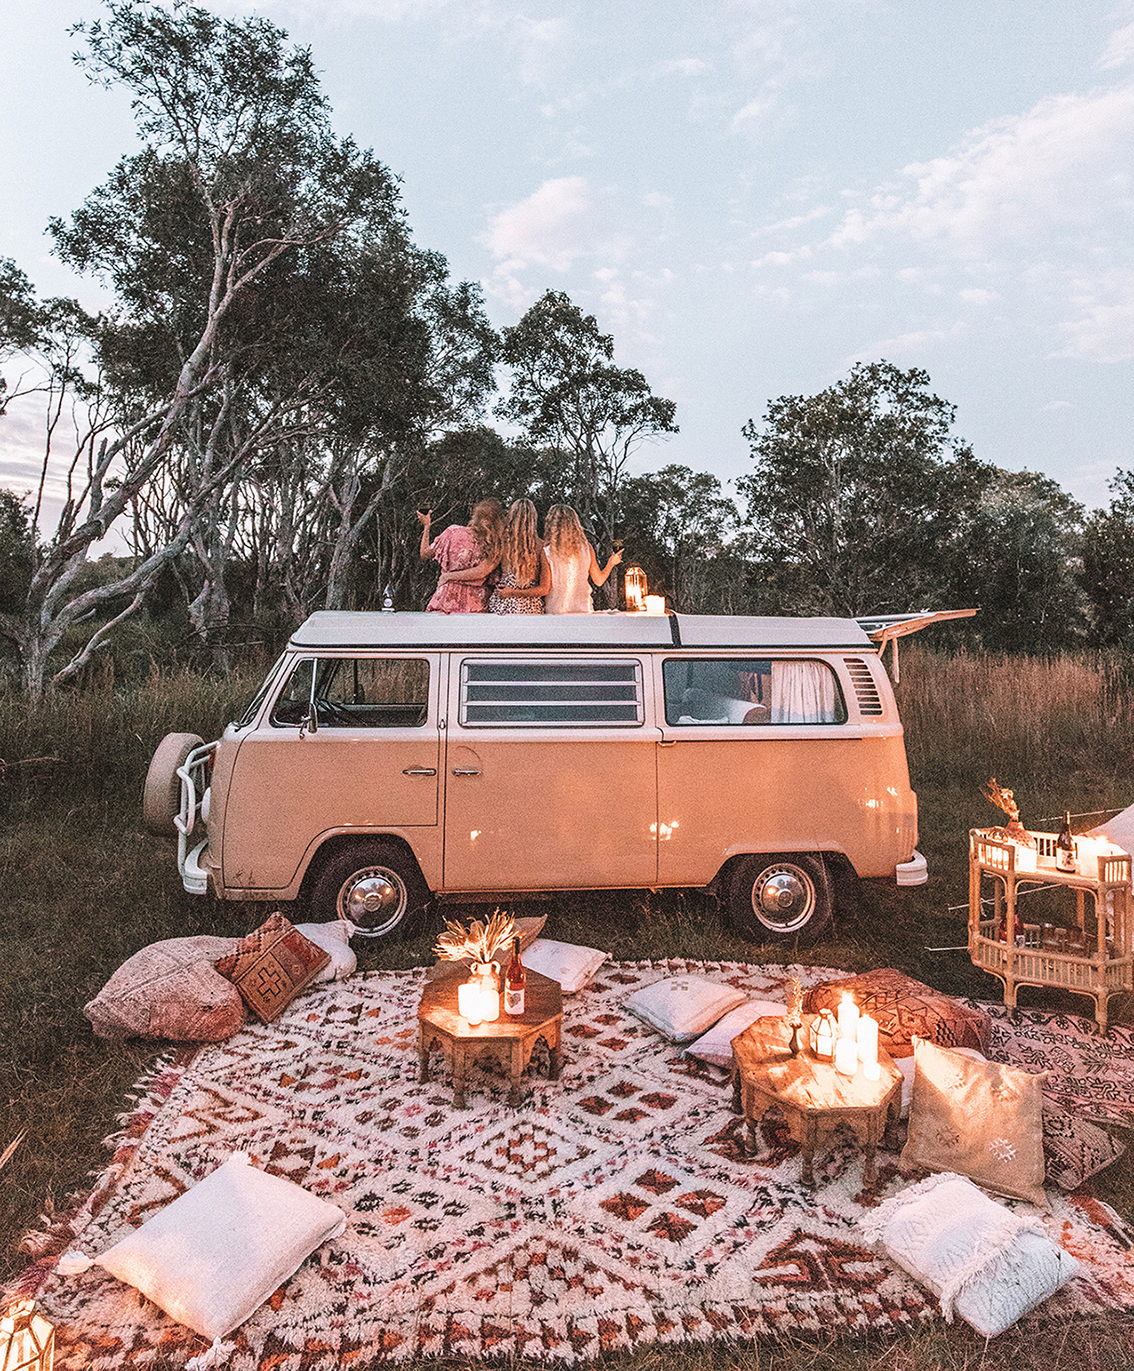 Dreamy picnic camp set up with @spell #campingpictures